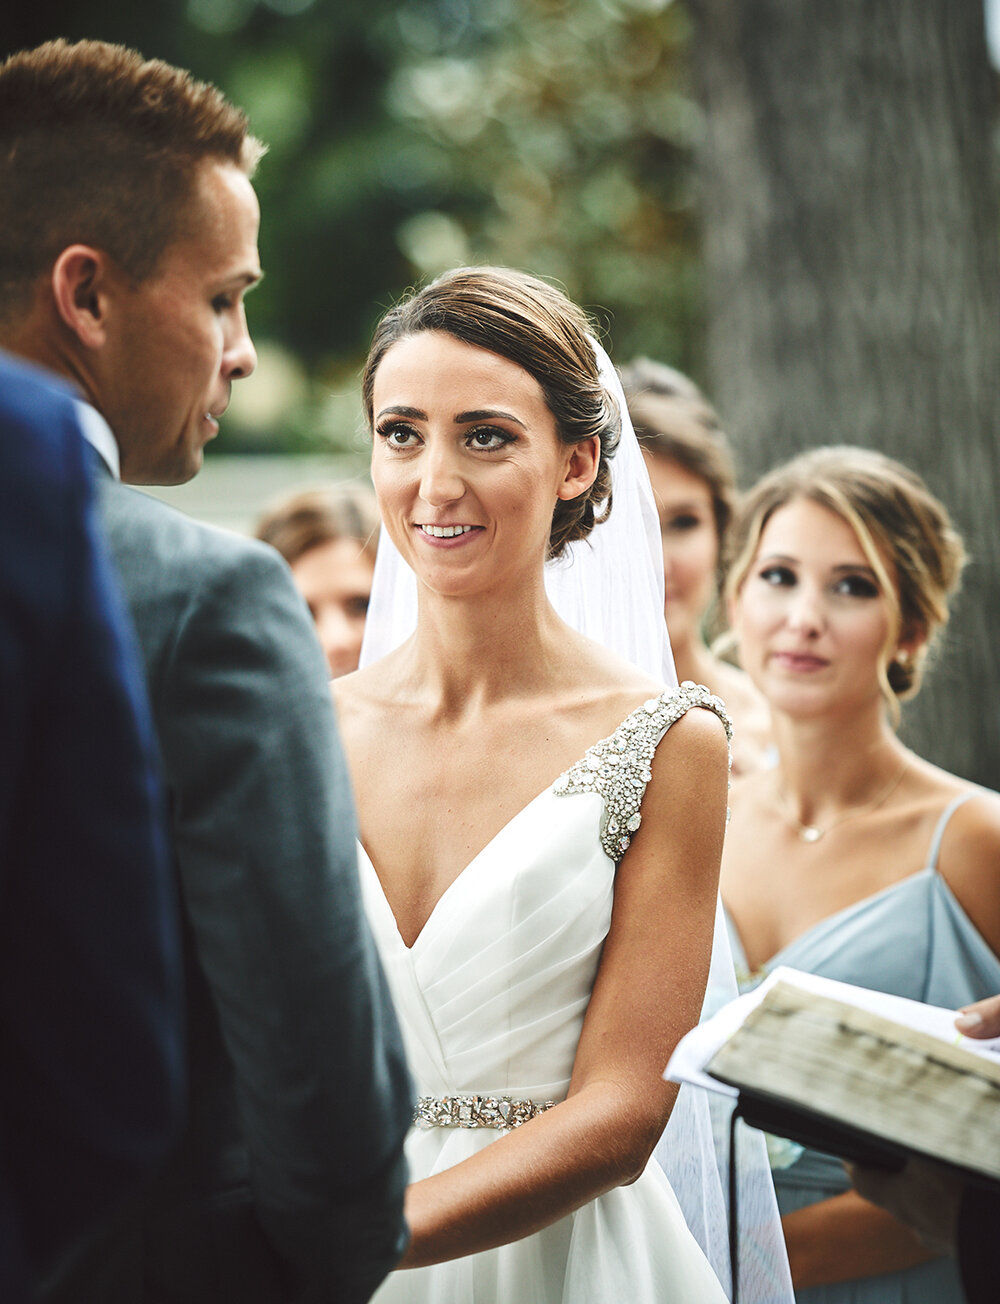 A French Countryside-Inspired Ryland Inn New Jersey Wedding - The Overwhelmed Bride Wedding Ideas Blog